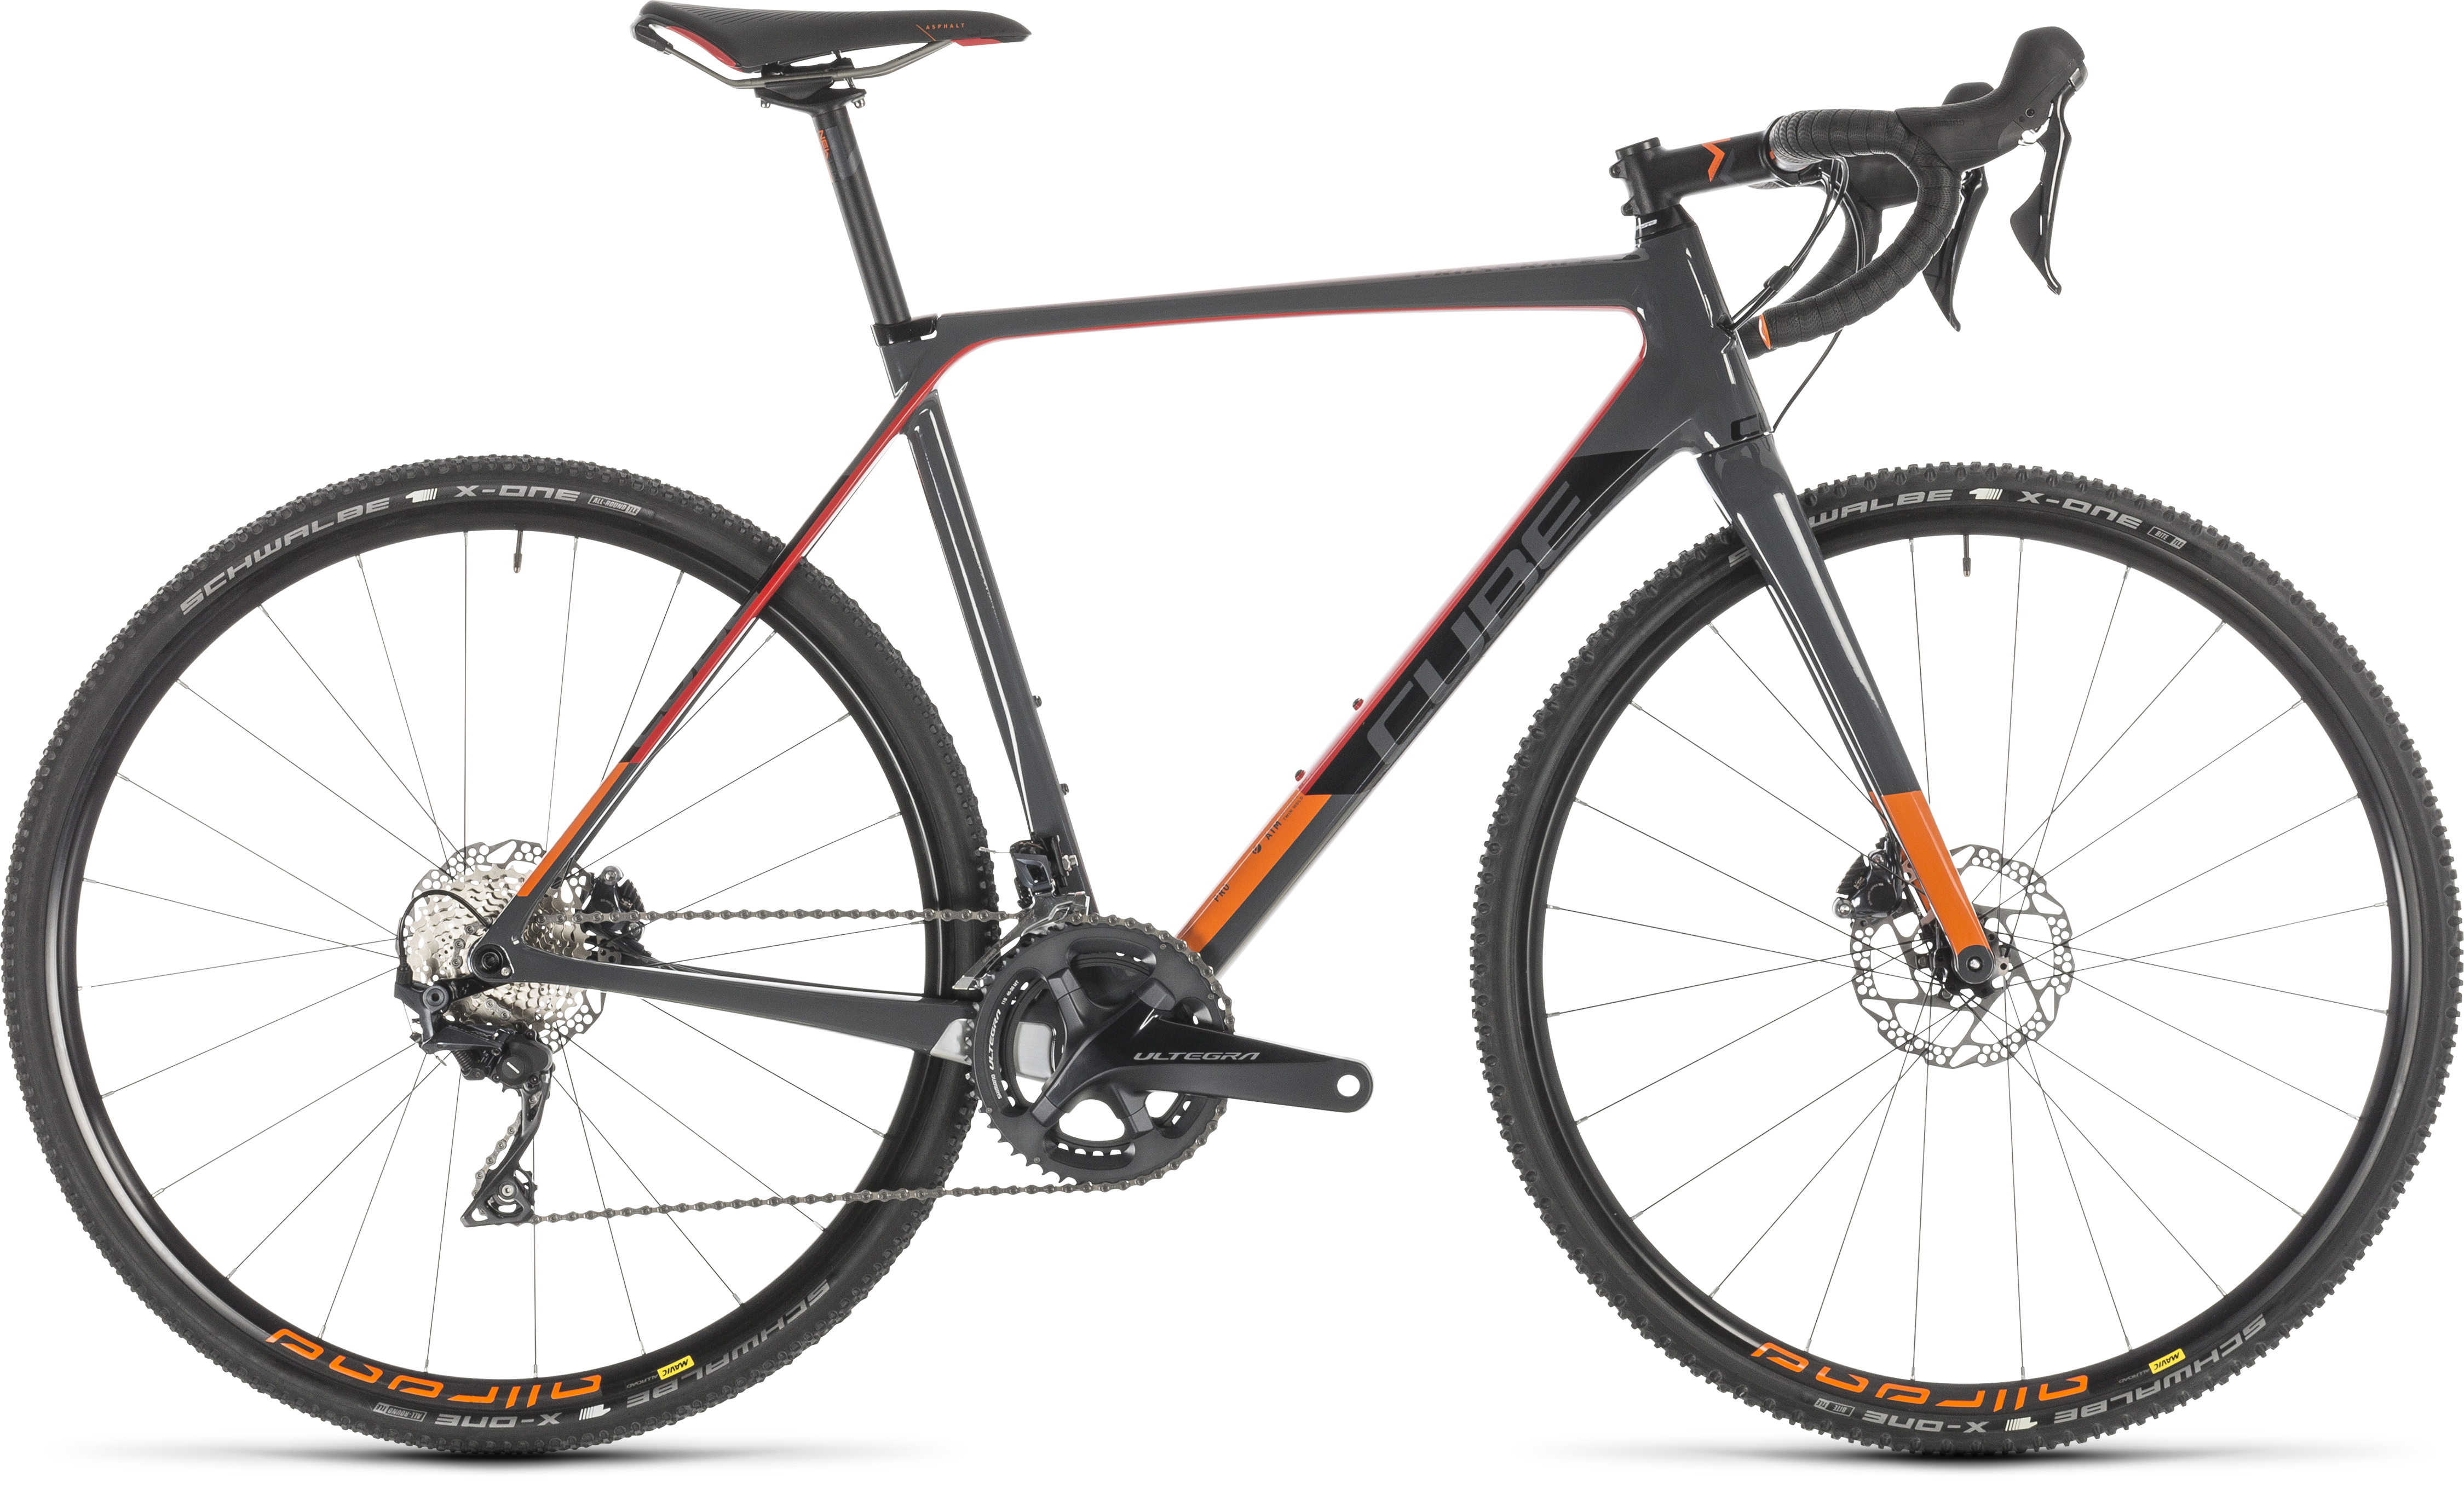 Cube 40 Anthrazit Metallic All-in-one Set Cyclocross Bikes